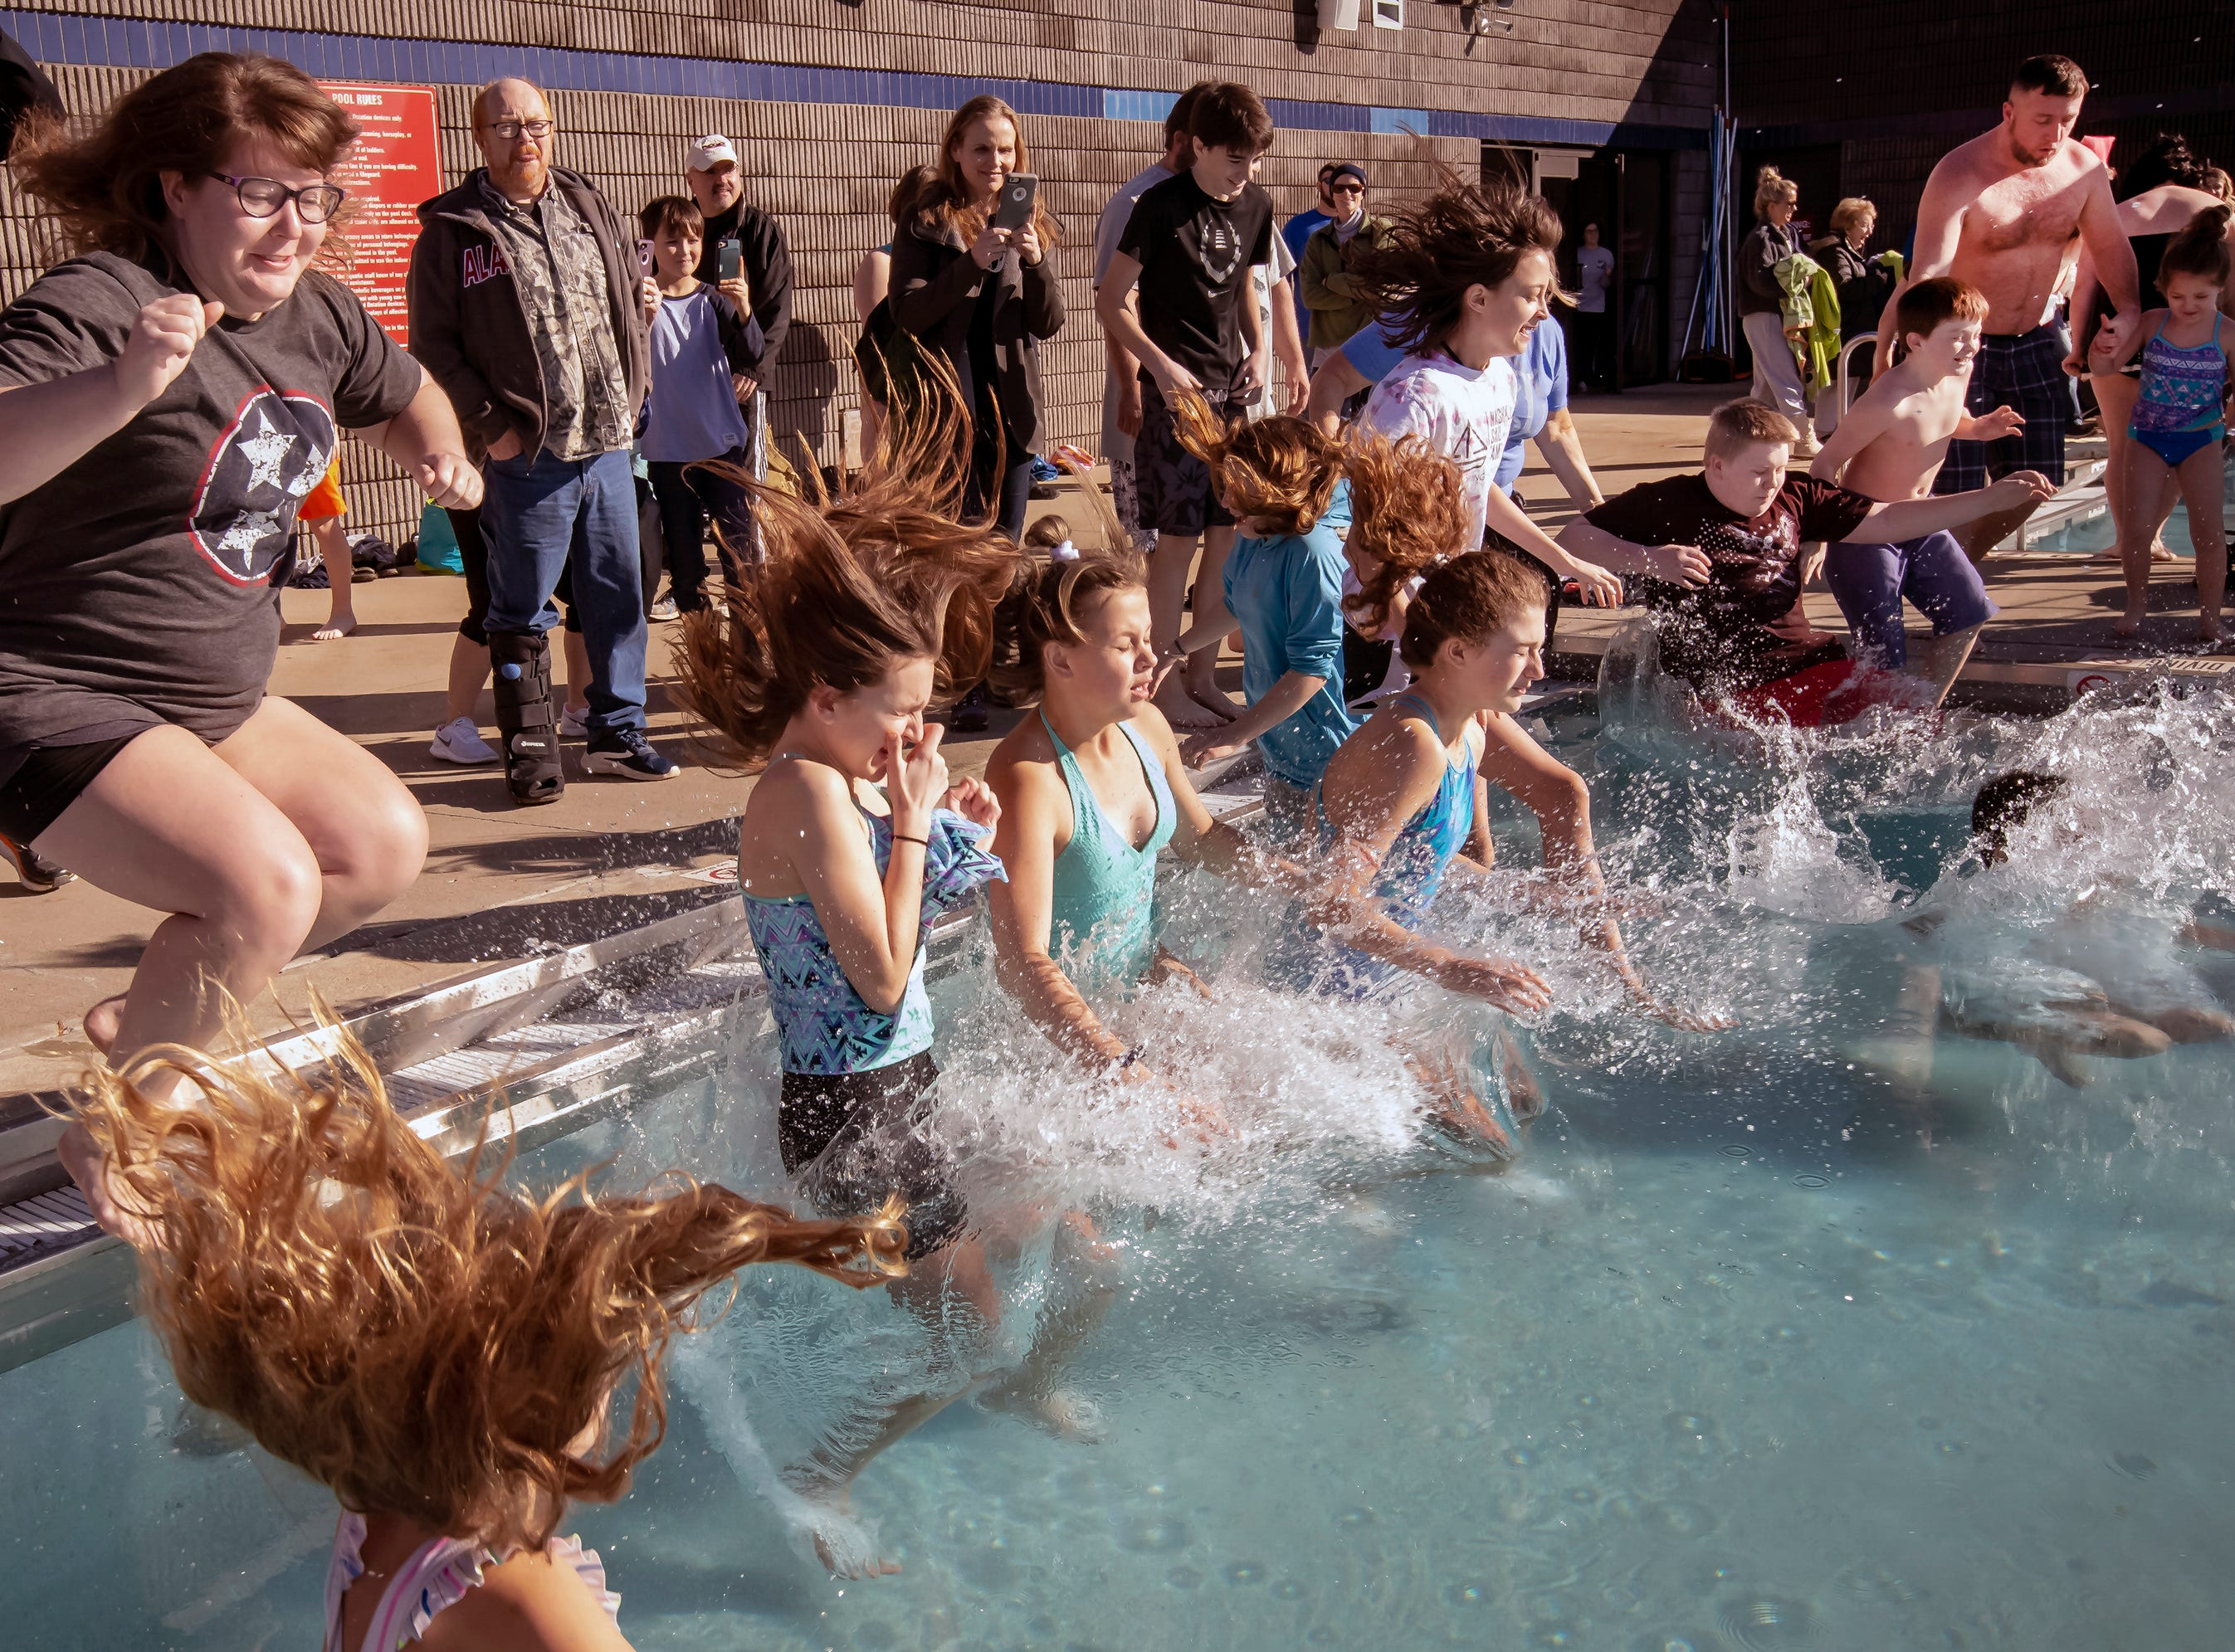 Polar Bear Plunge participants jump into Jumping into the water at the 17th annual Polar Bear Plunge held at Sports Com Jan. 5, 2019.